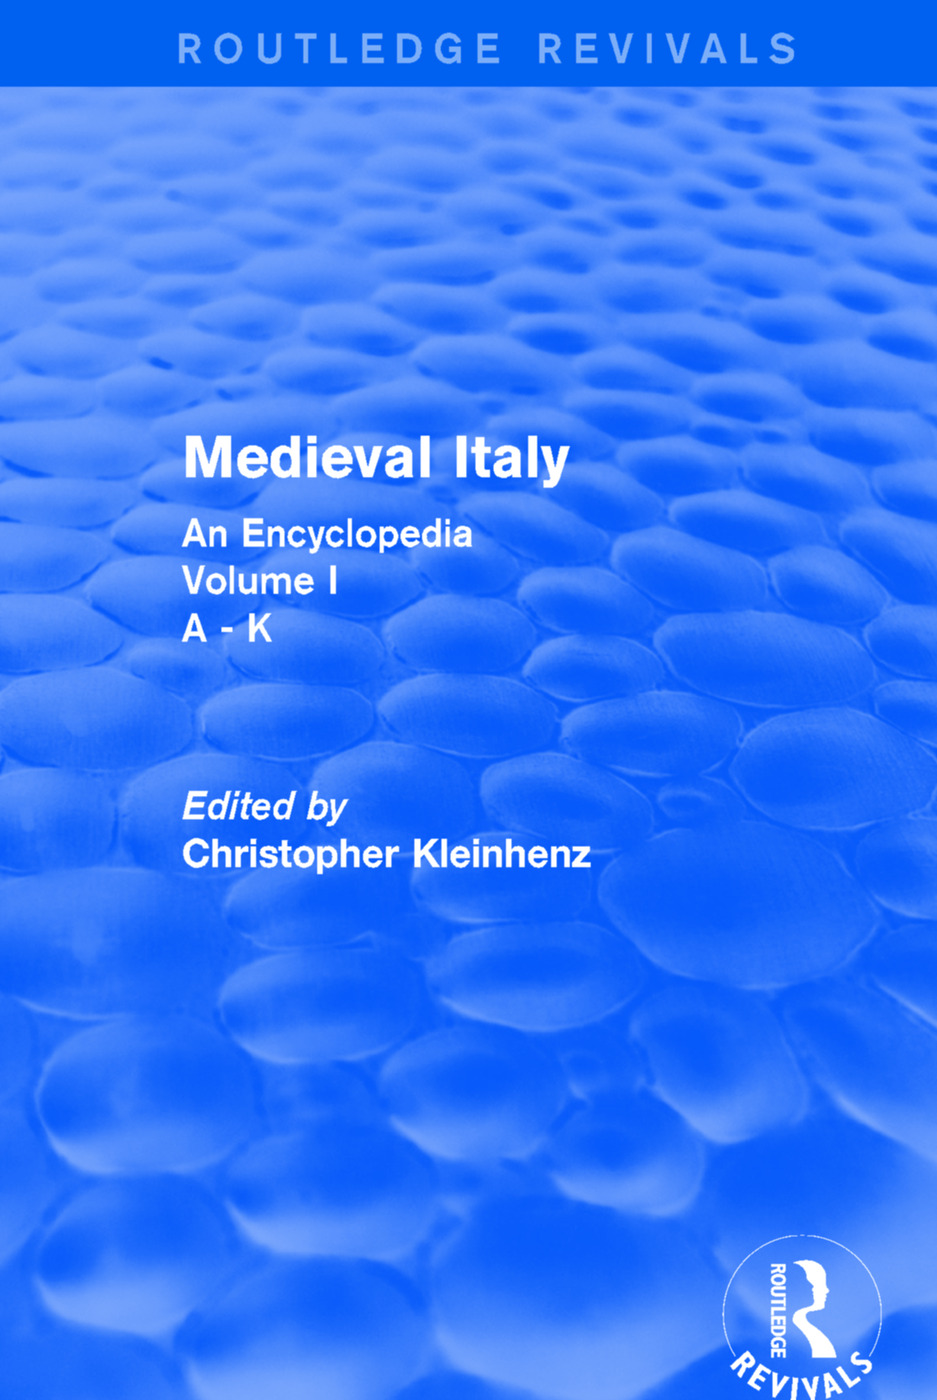 Routledge Revivals: Medieval Italy (2004): An Encyclopedia - Volume I, 1st Edition (Paperback) book cover